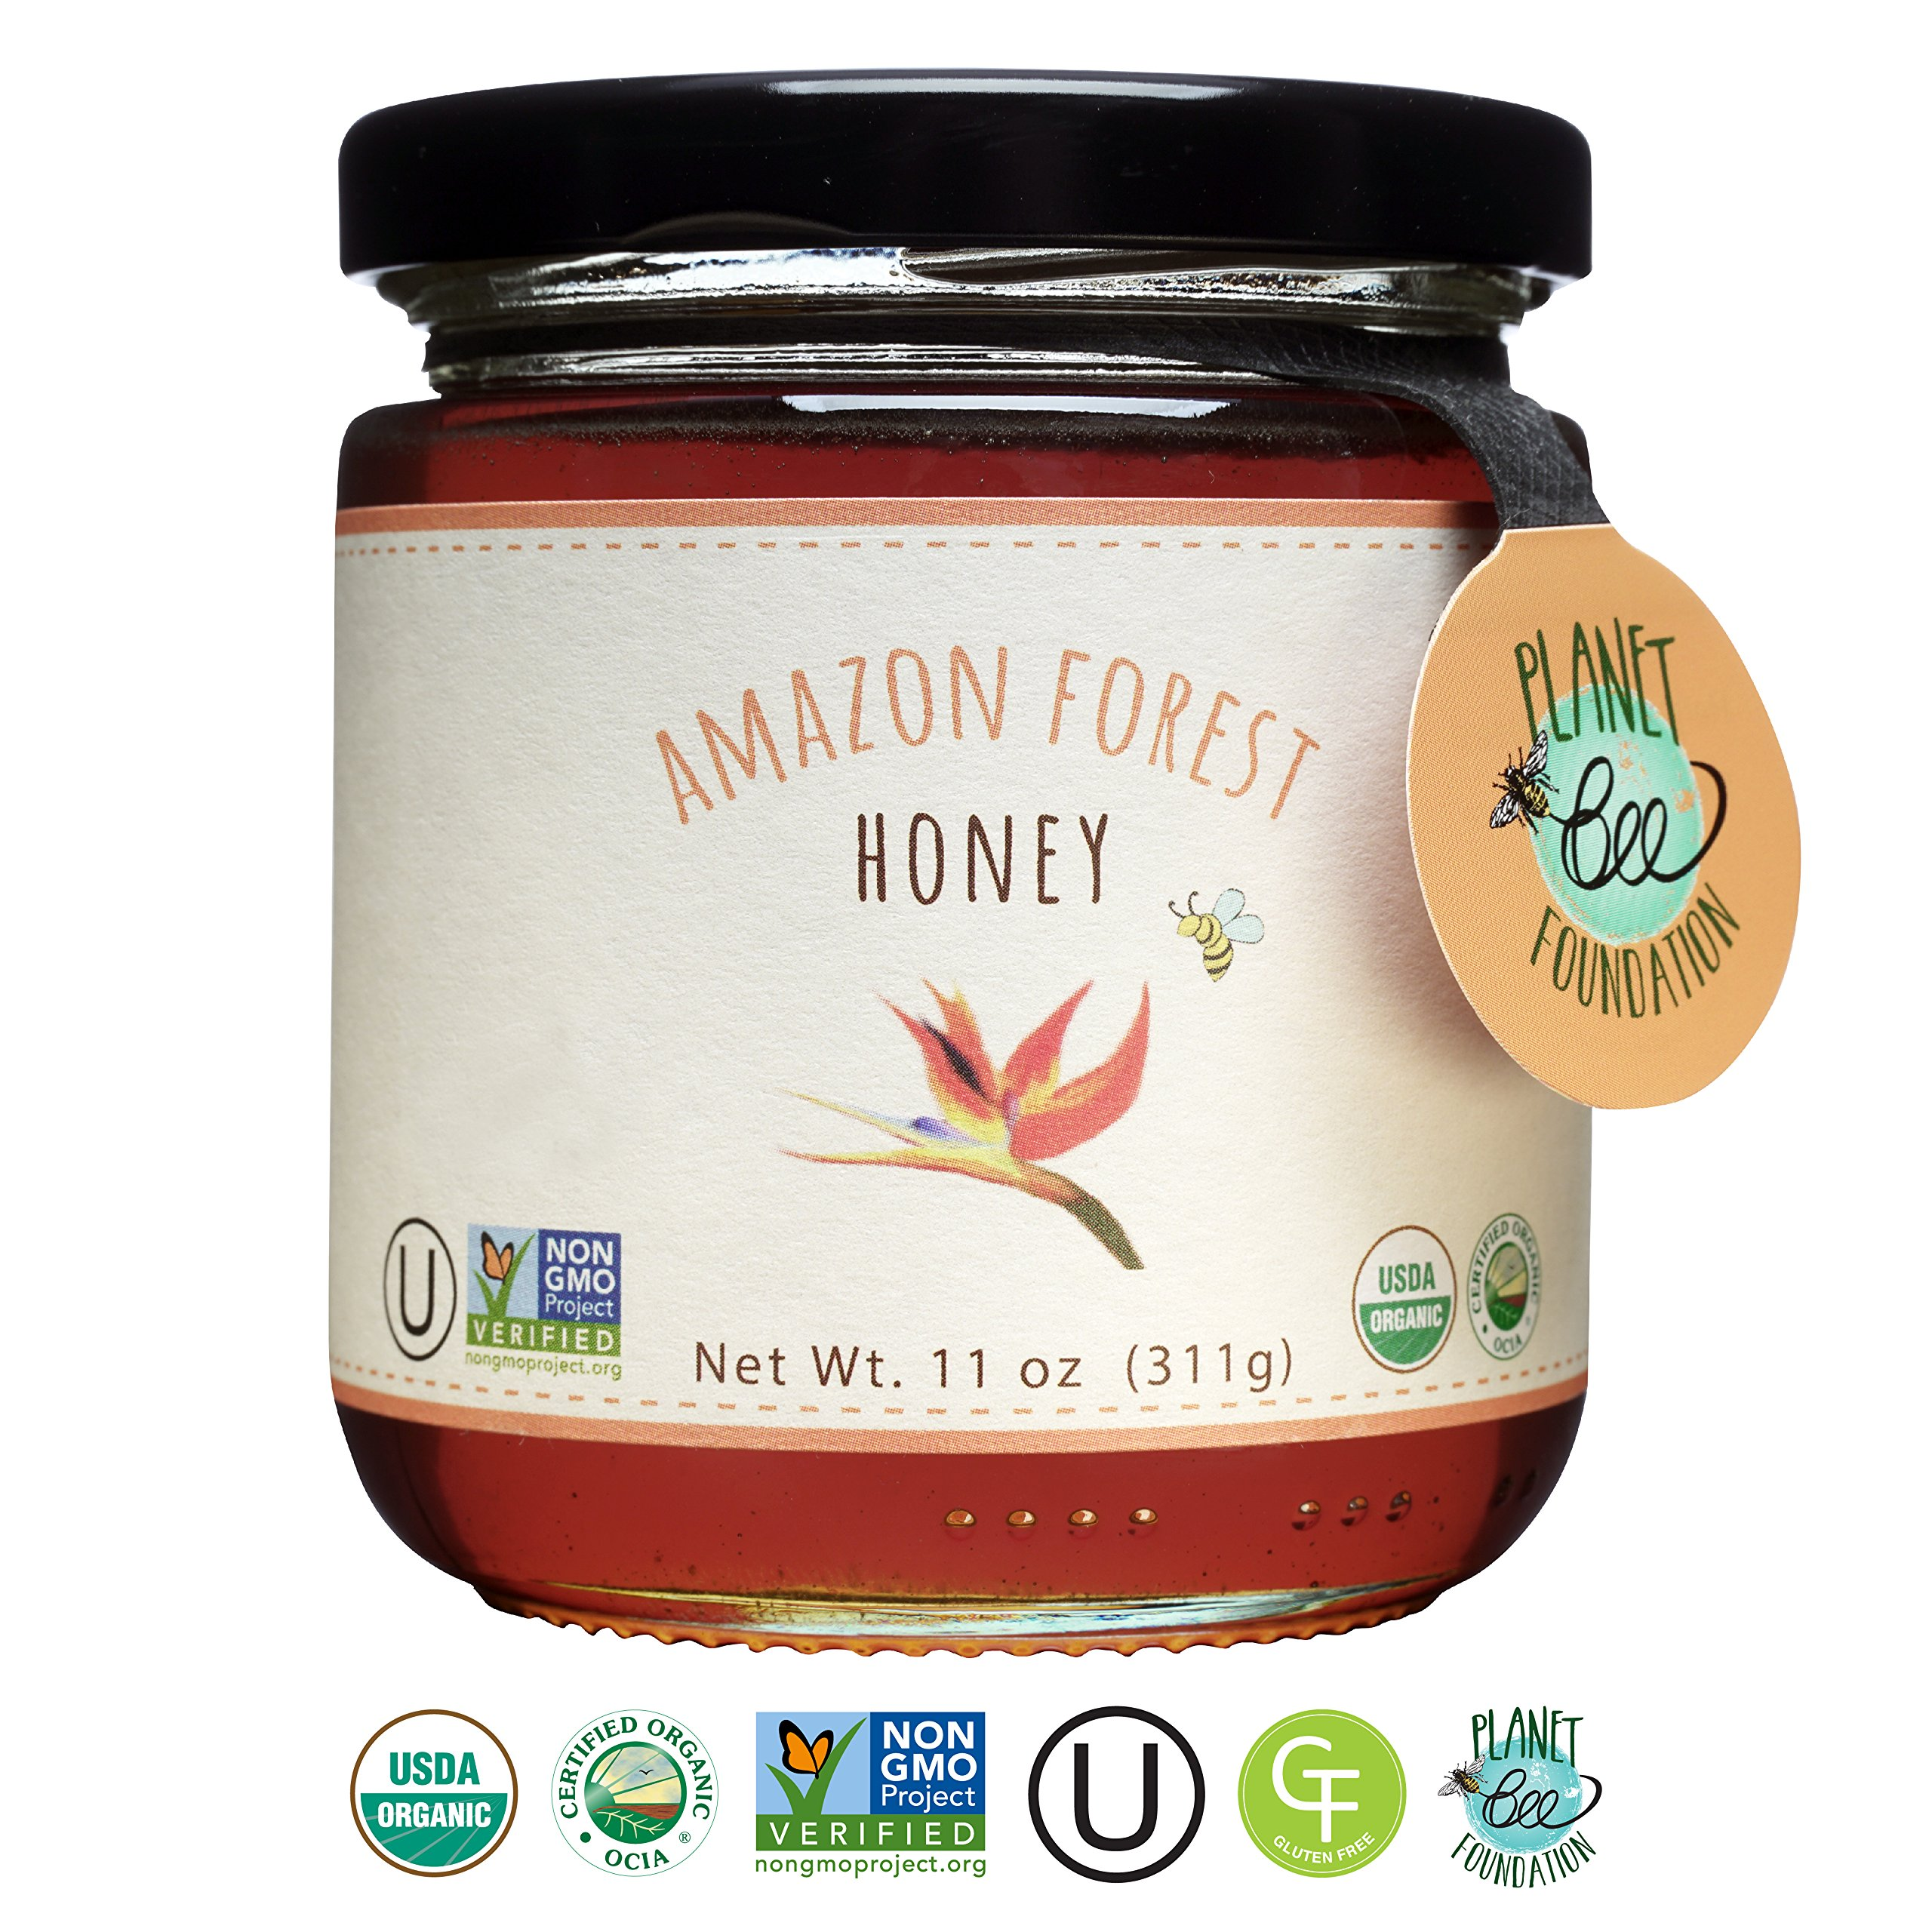 GREENBOW Organic Amazon Forest Honey - 100% USDA Certified Organic, Gluten Free, Certified Non-GMO, and Kosher Organic Amazon Forest Honey (11oz) - Taste the Nature